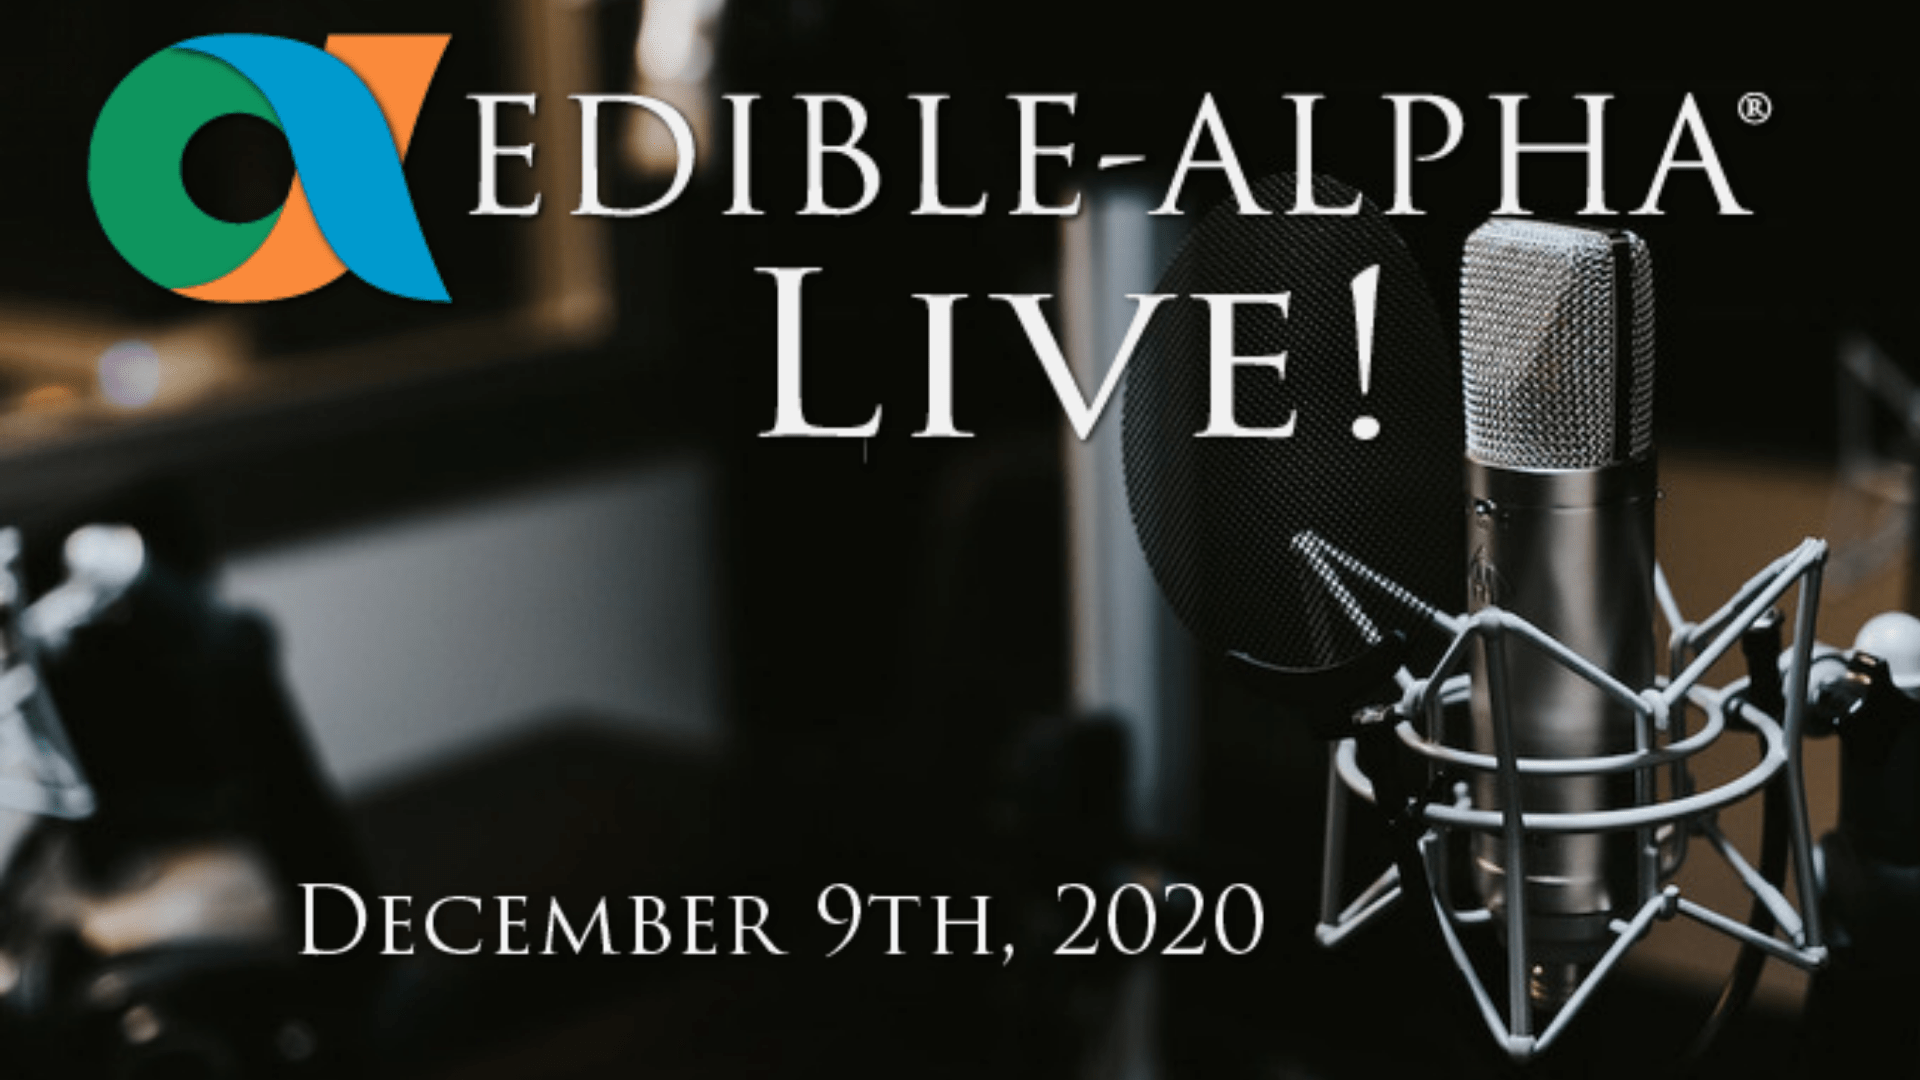 Edible-Alpha Live event image with date on it.